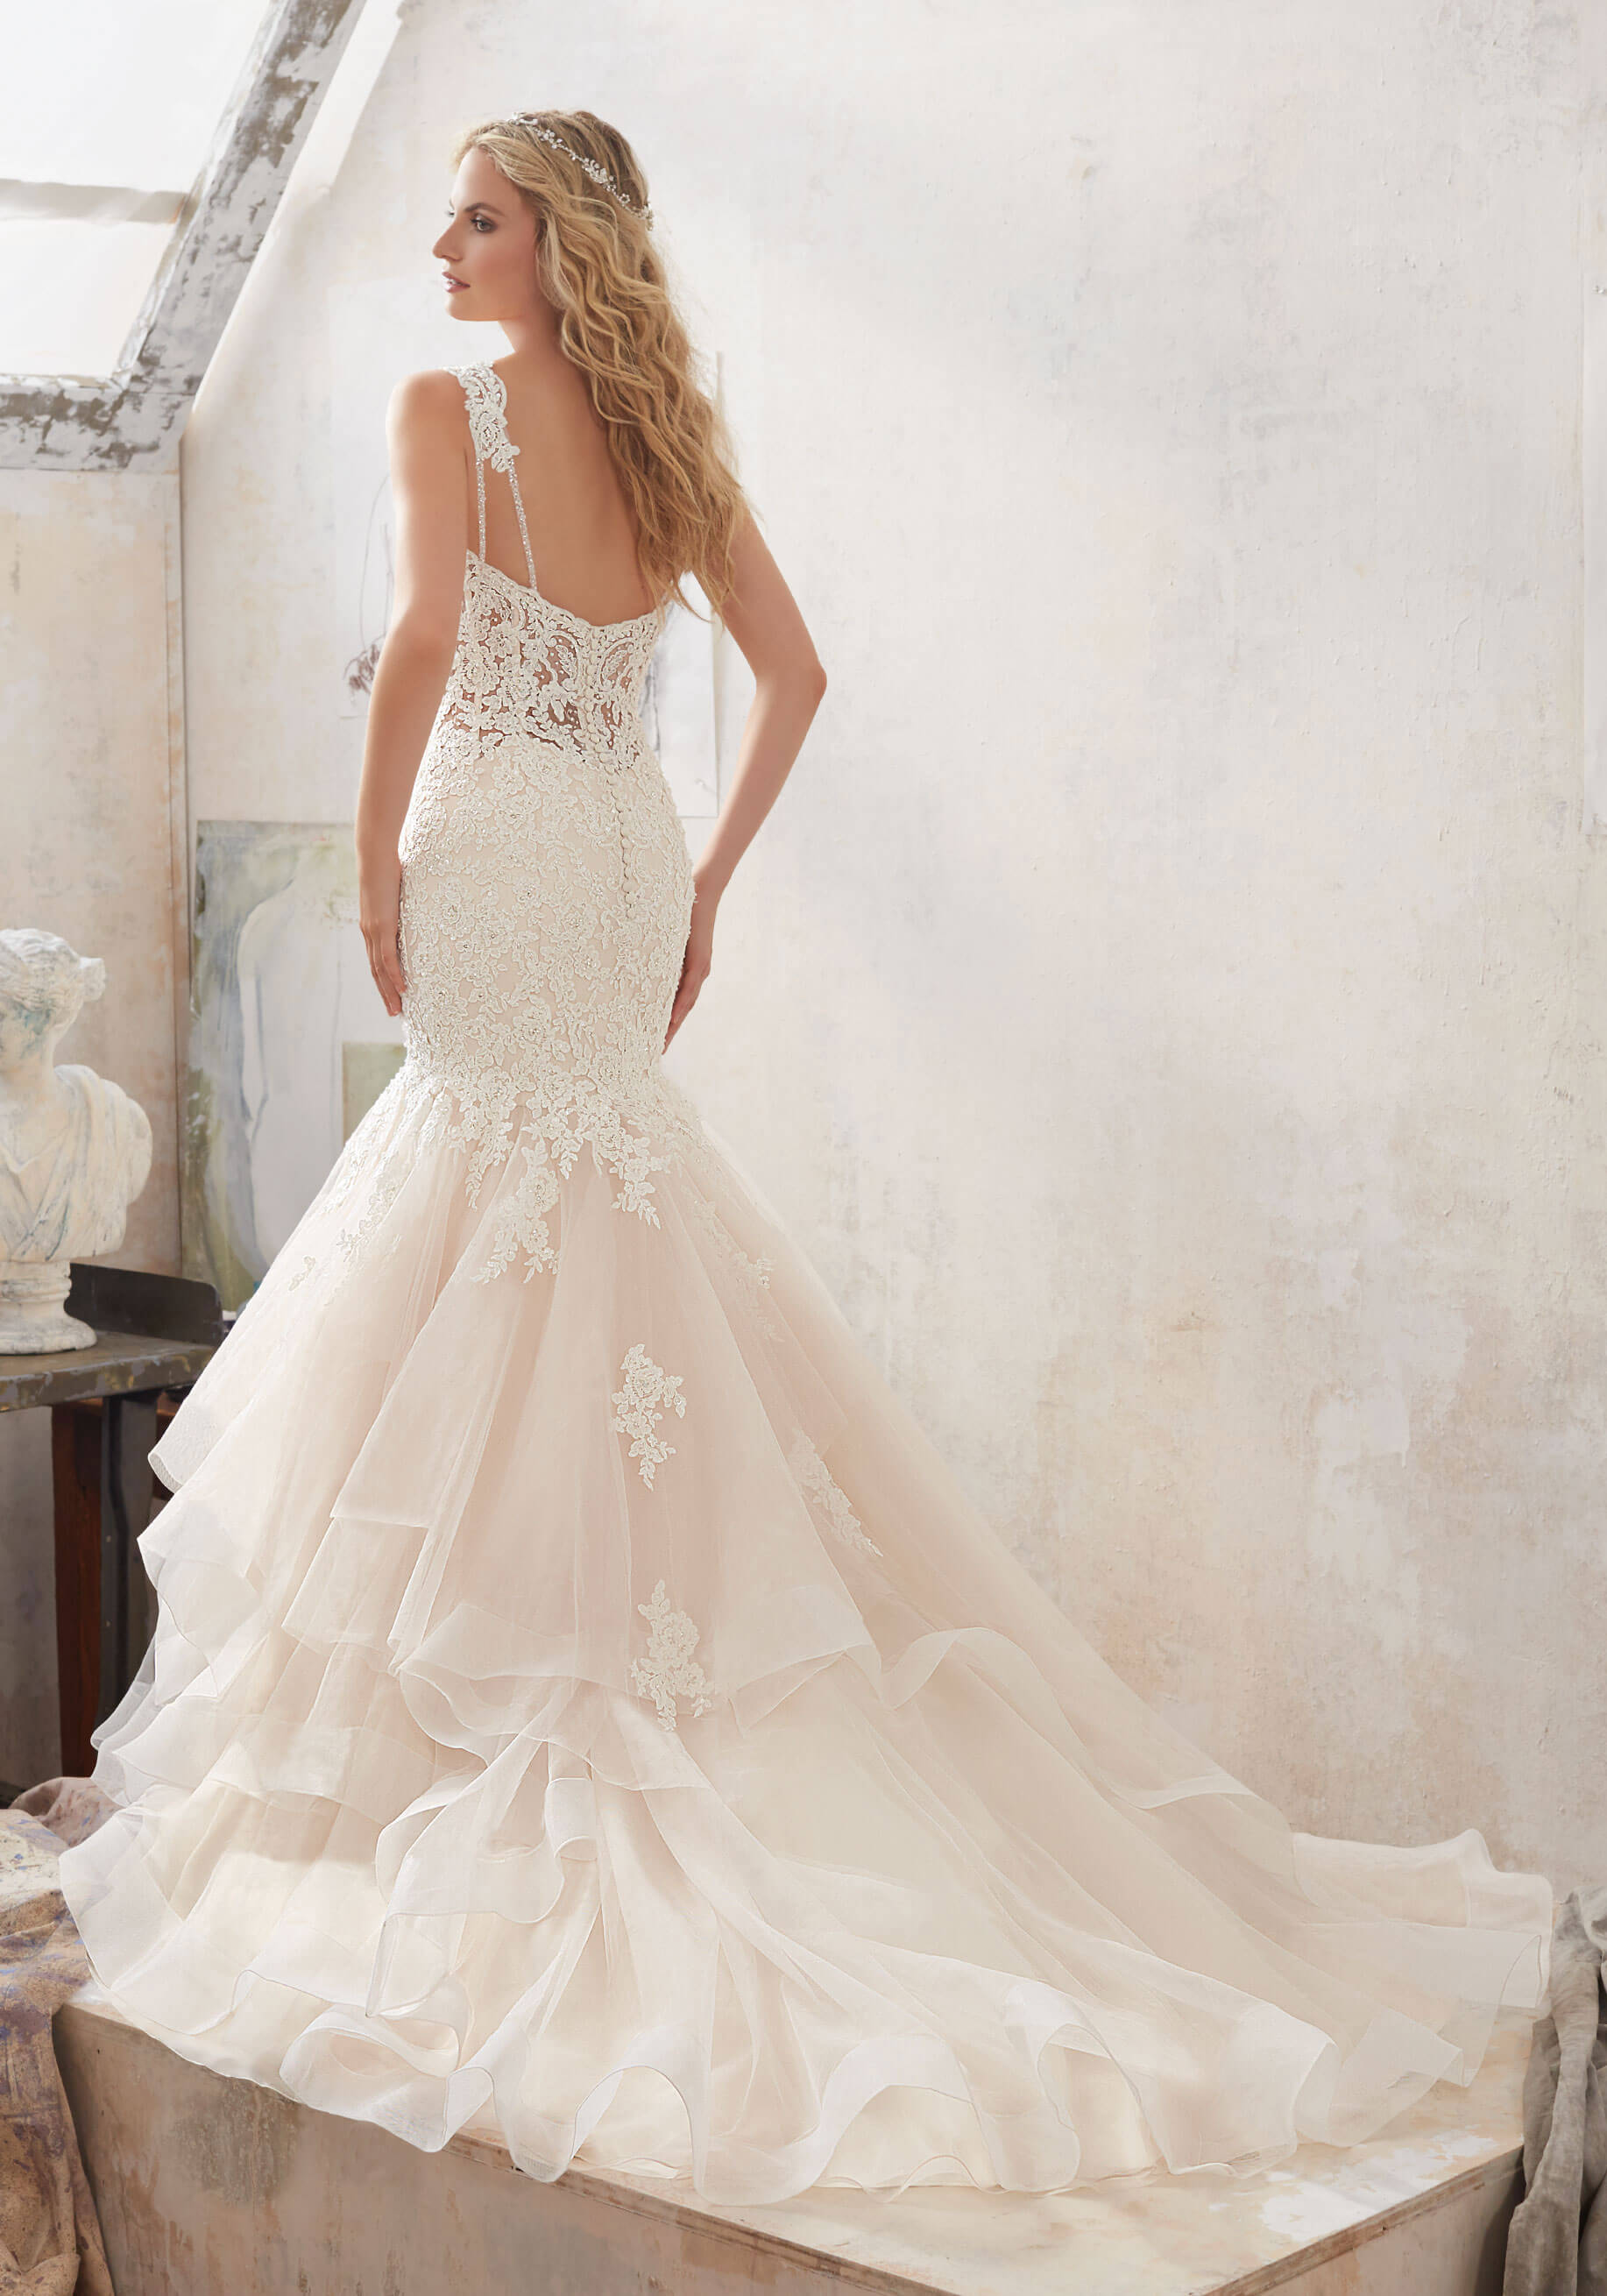 Mori Lee - Size 12 Fit And Flare Dress